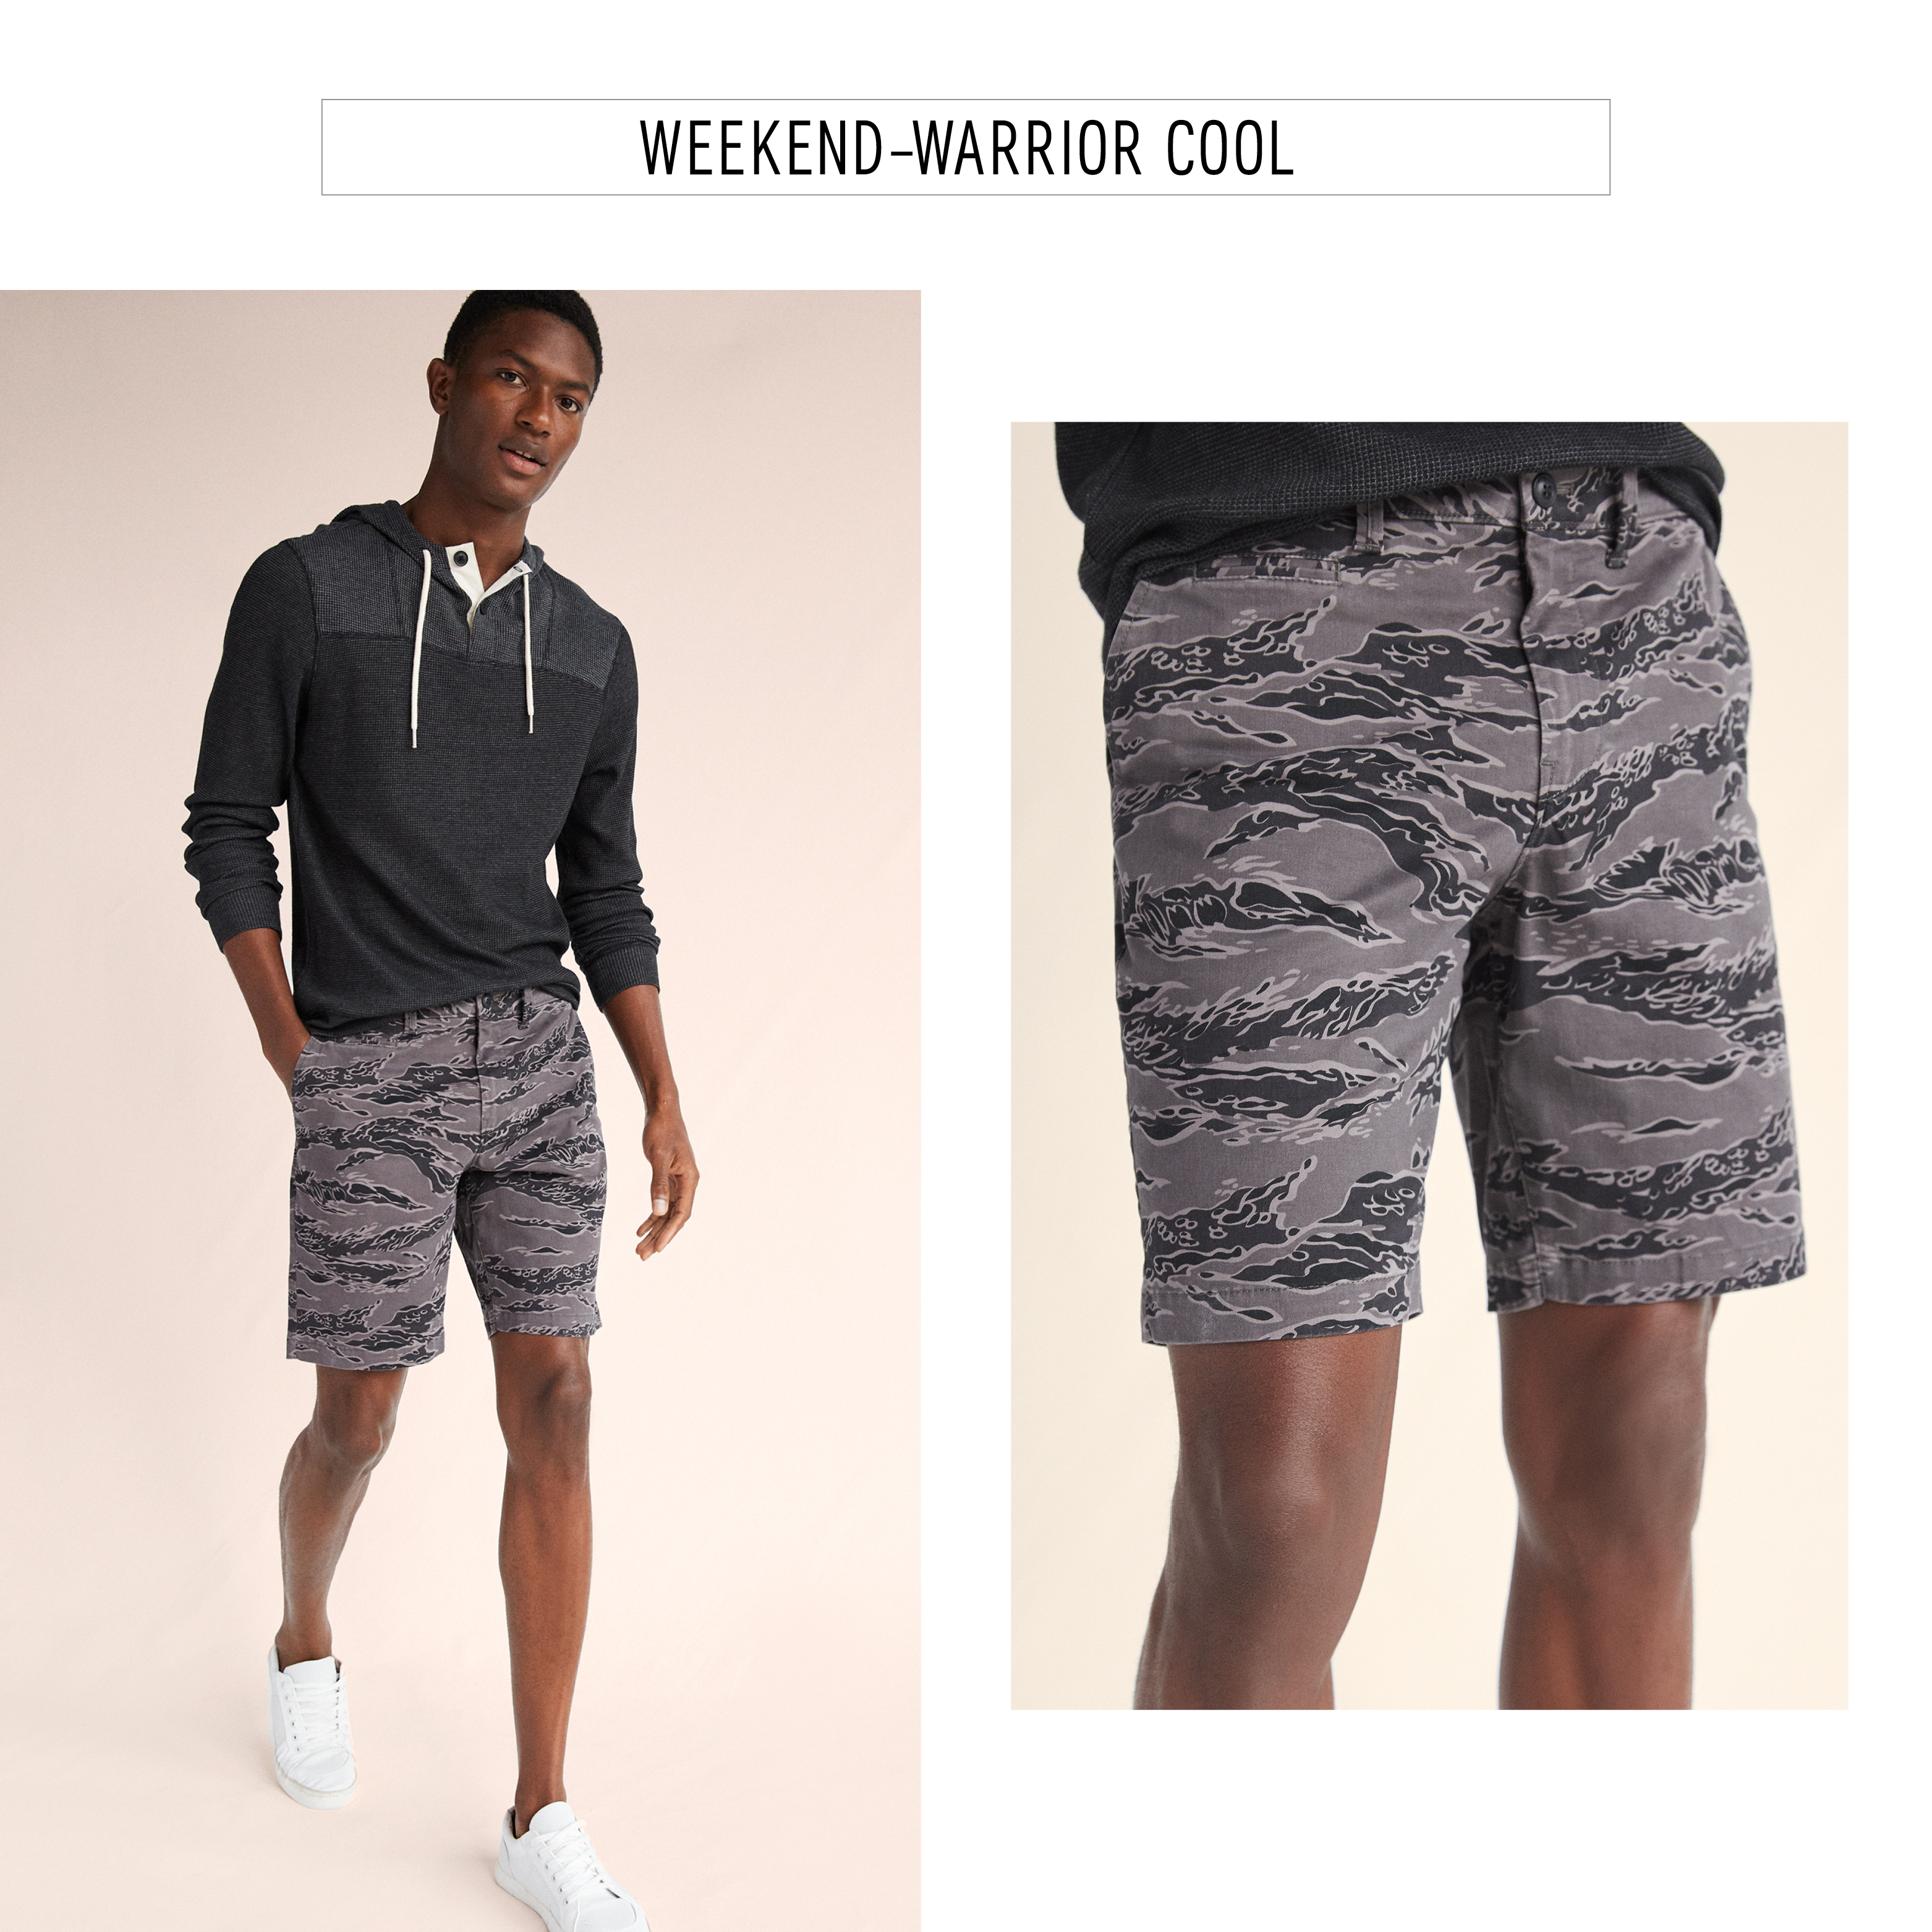 mens-shorts-weekend-warrior-cool